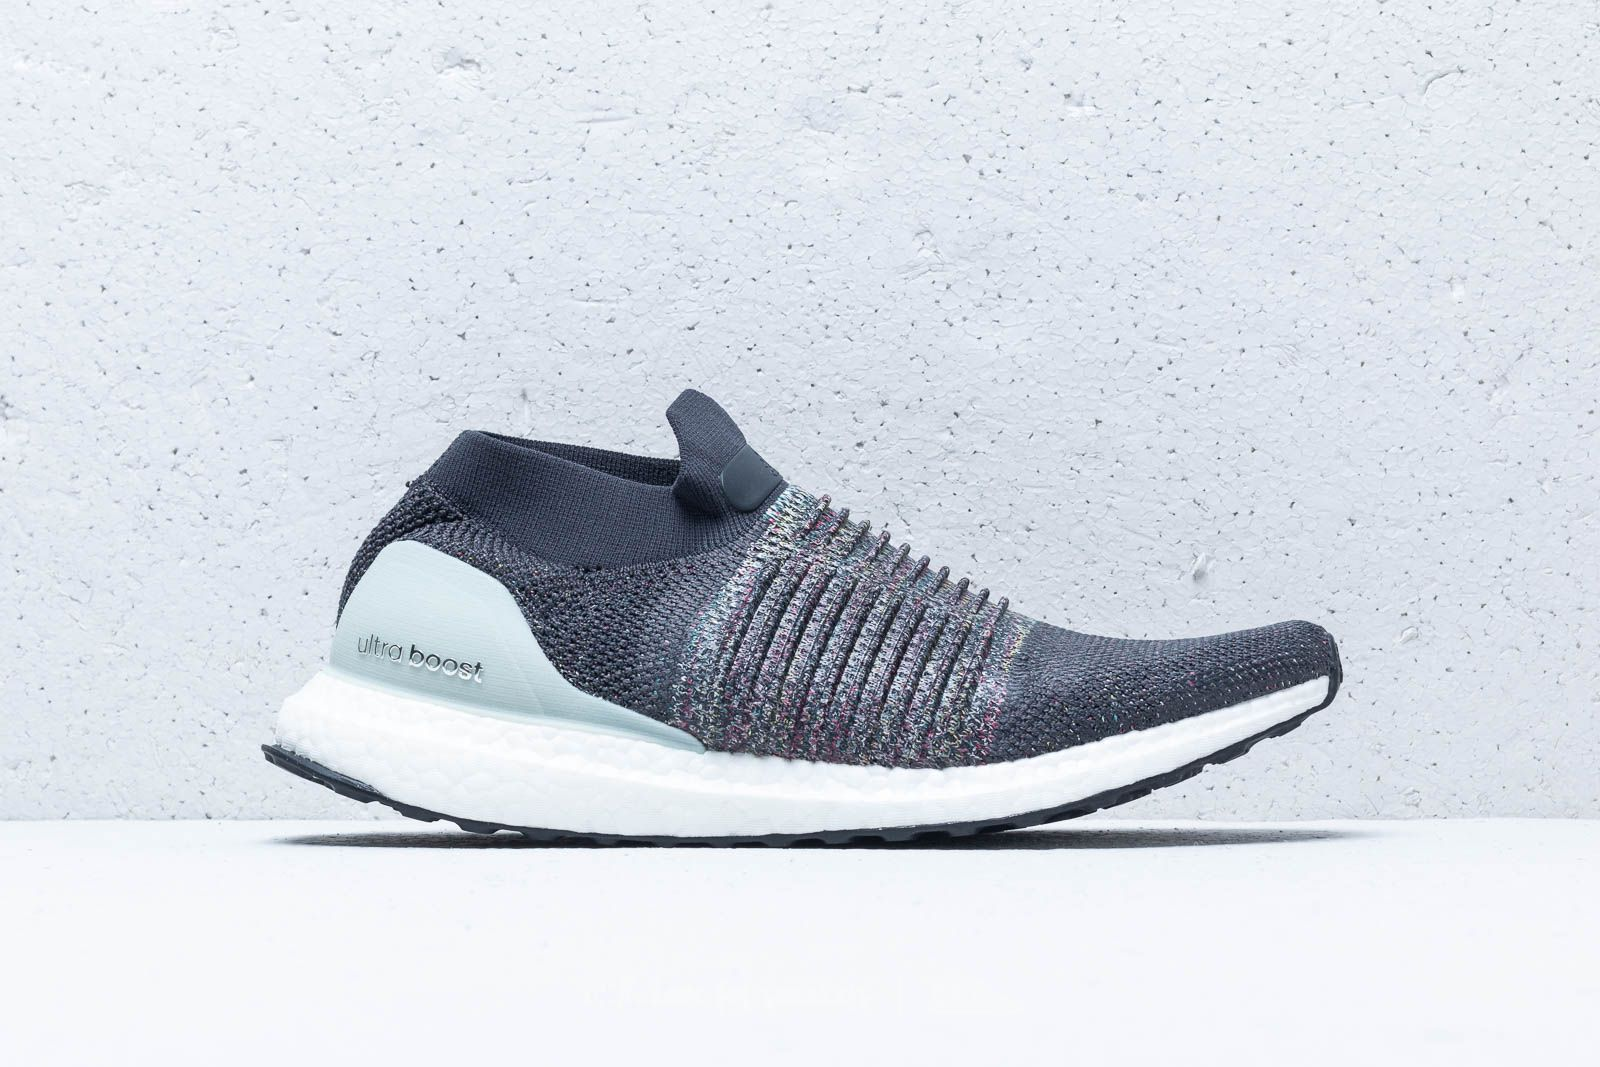 f6617876a adidas UltraBOOST Laceless Carbon  DGH Solid Grey  Ash Silver at a great  price 129